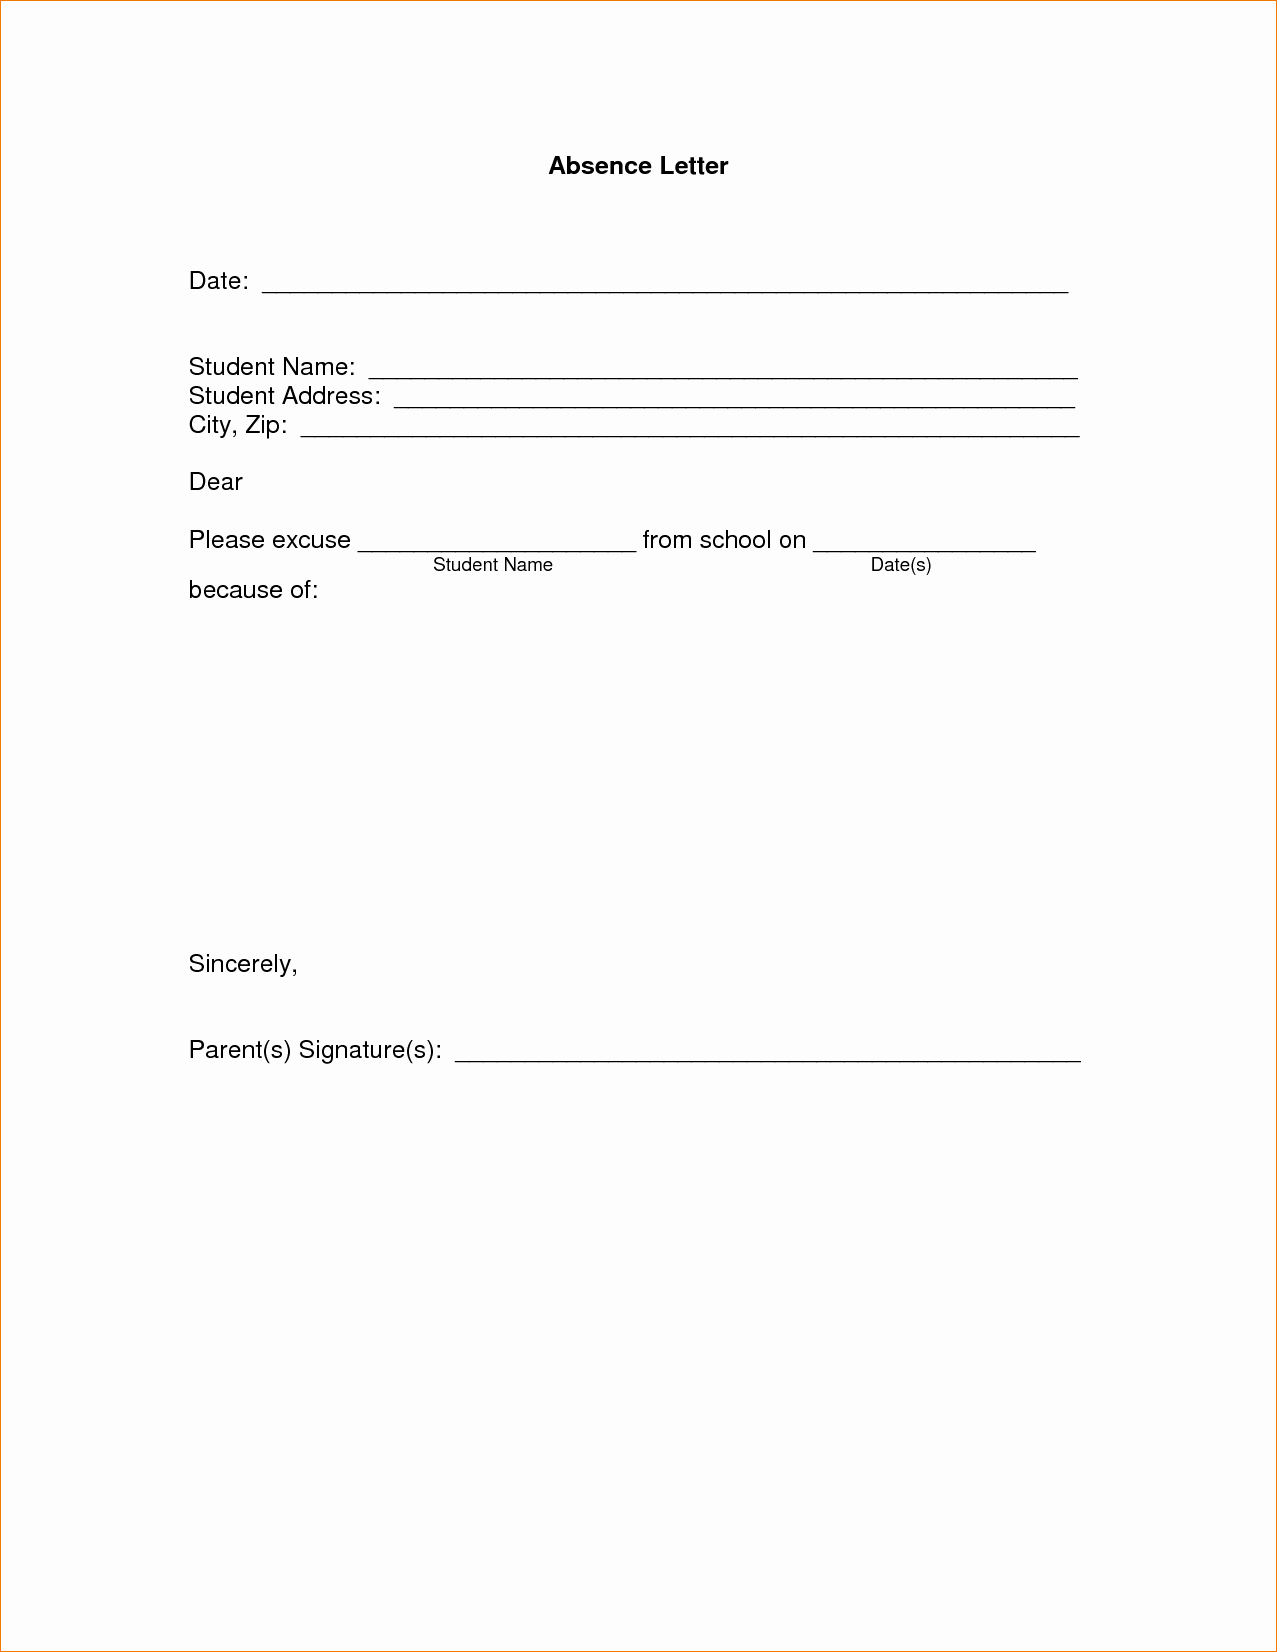 School Absence Excuse Letter Template Lovely 11 Absence Excuse Letteragenda Template Sample